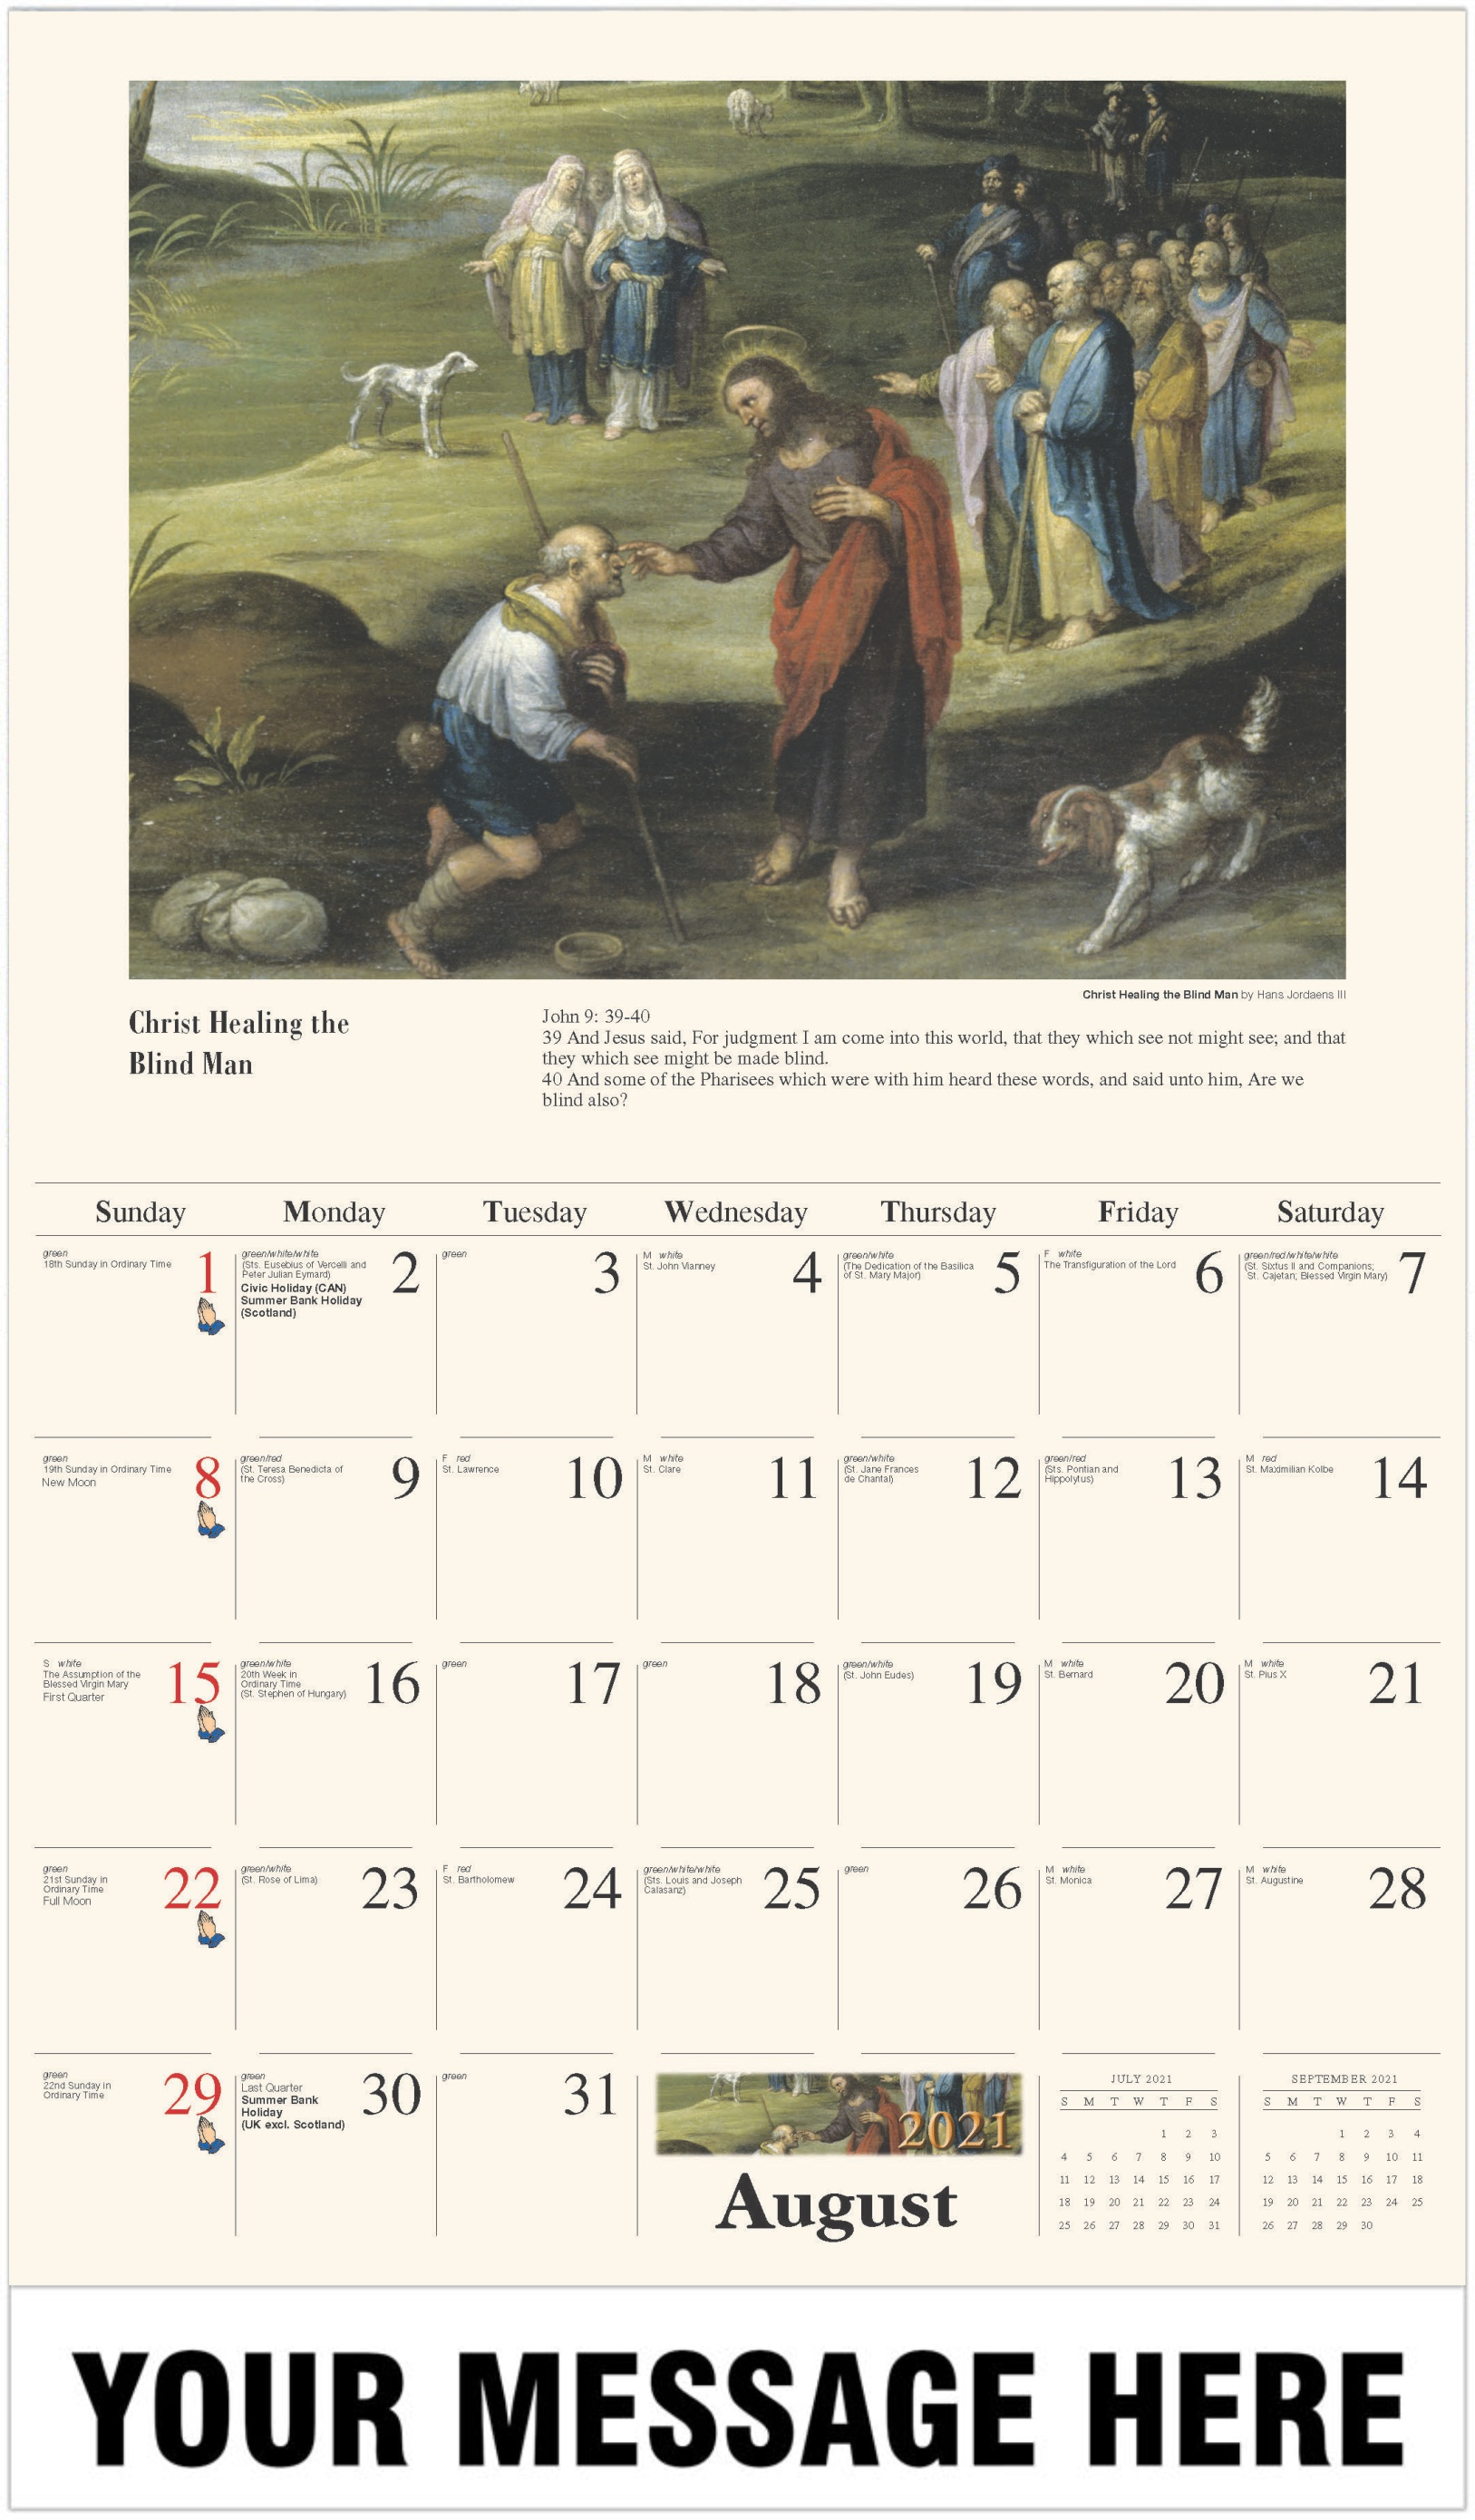 Christ Healing the Blind Man - August - Catholic Inspiration 2021 Promotional Calendar